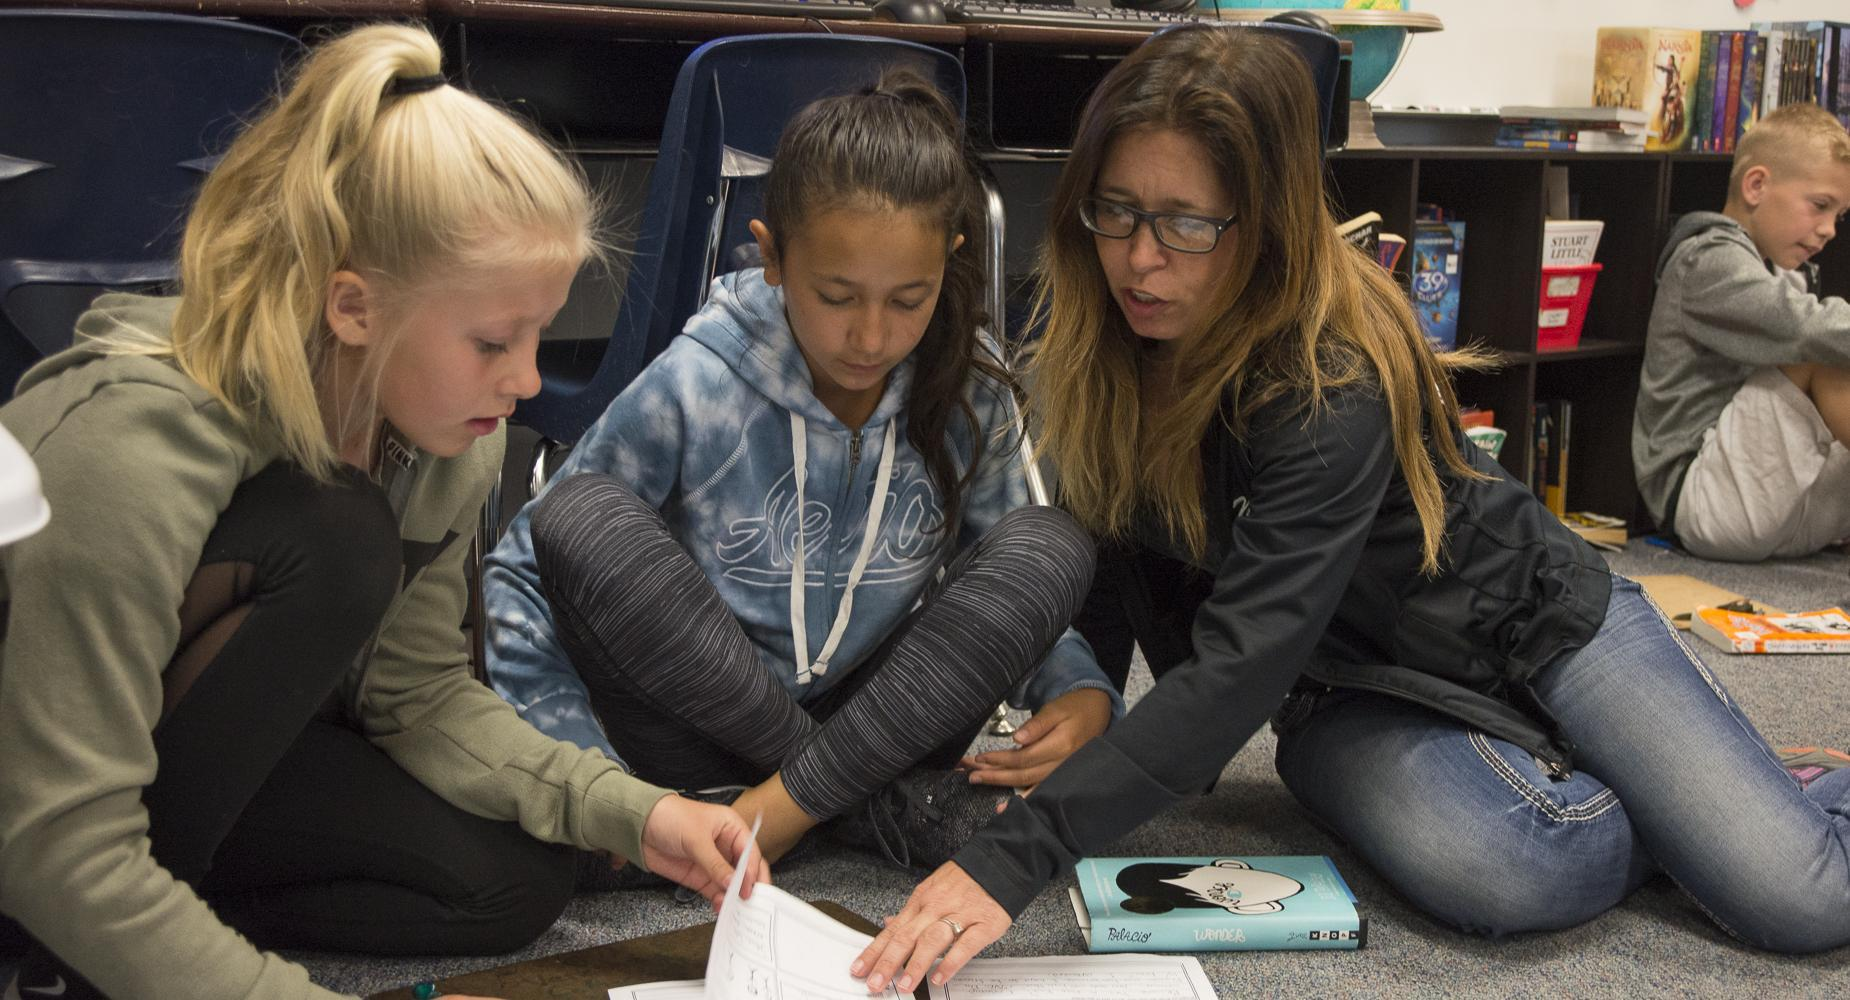 Teacher sits on floor to help two students with workbook